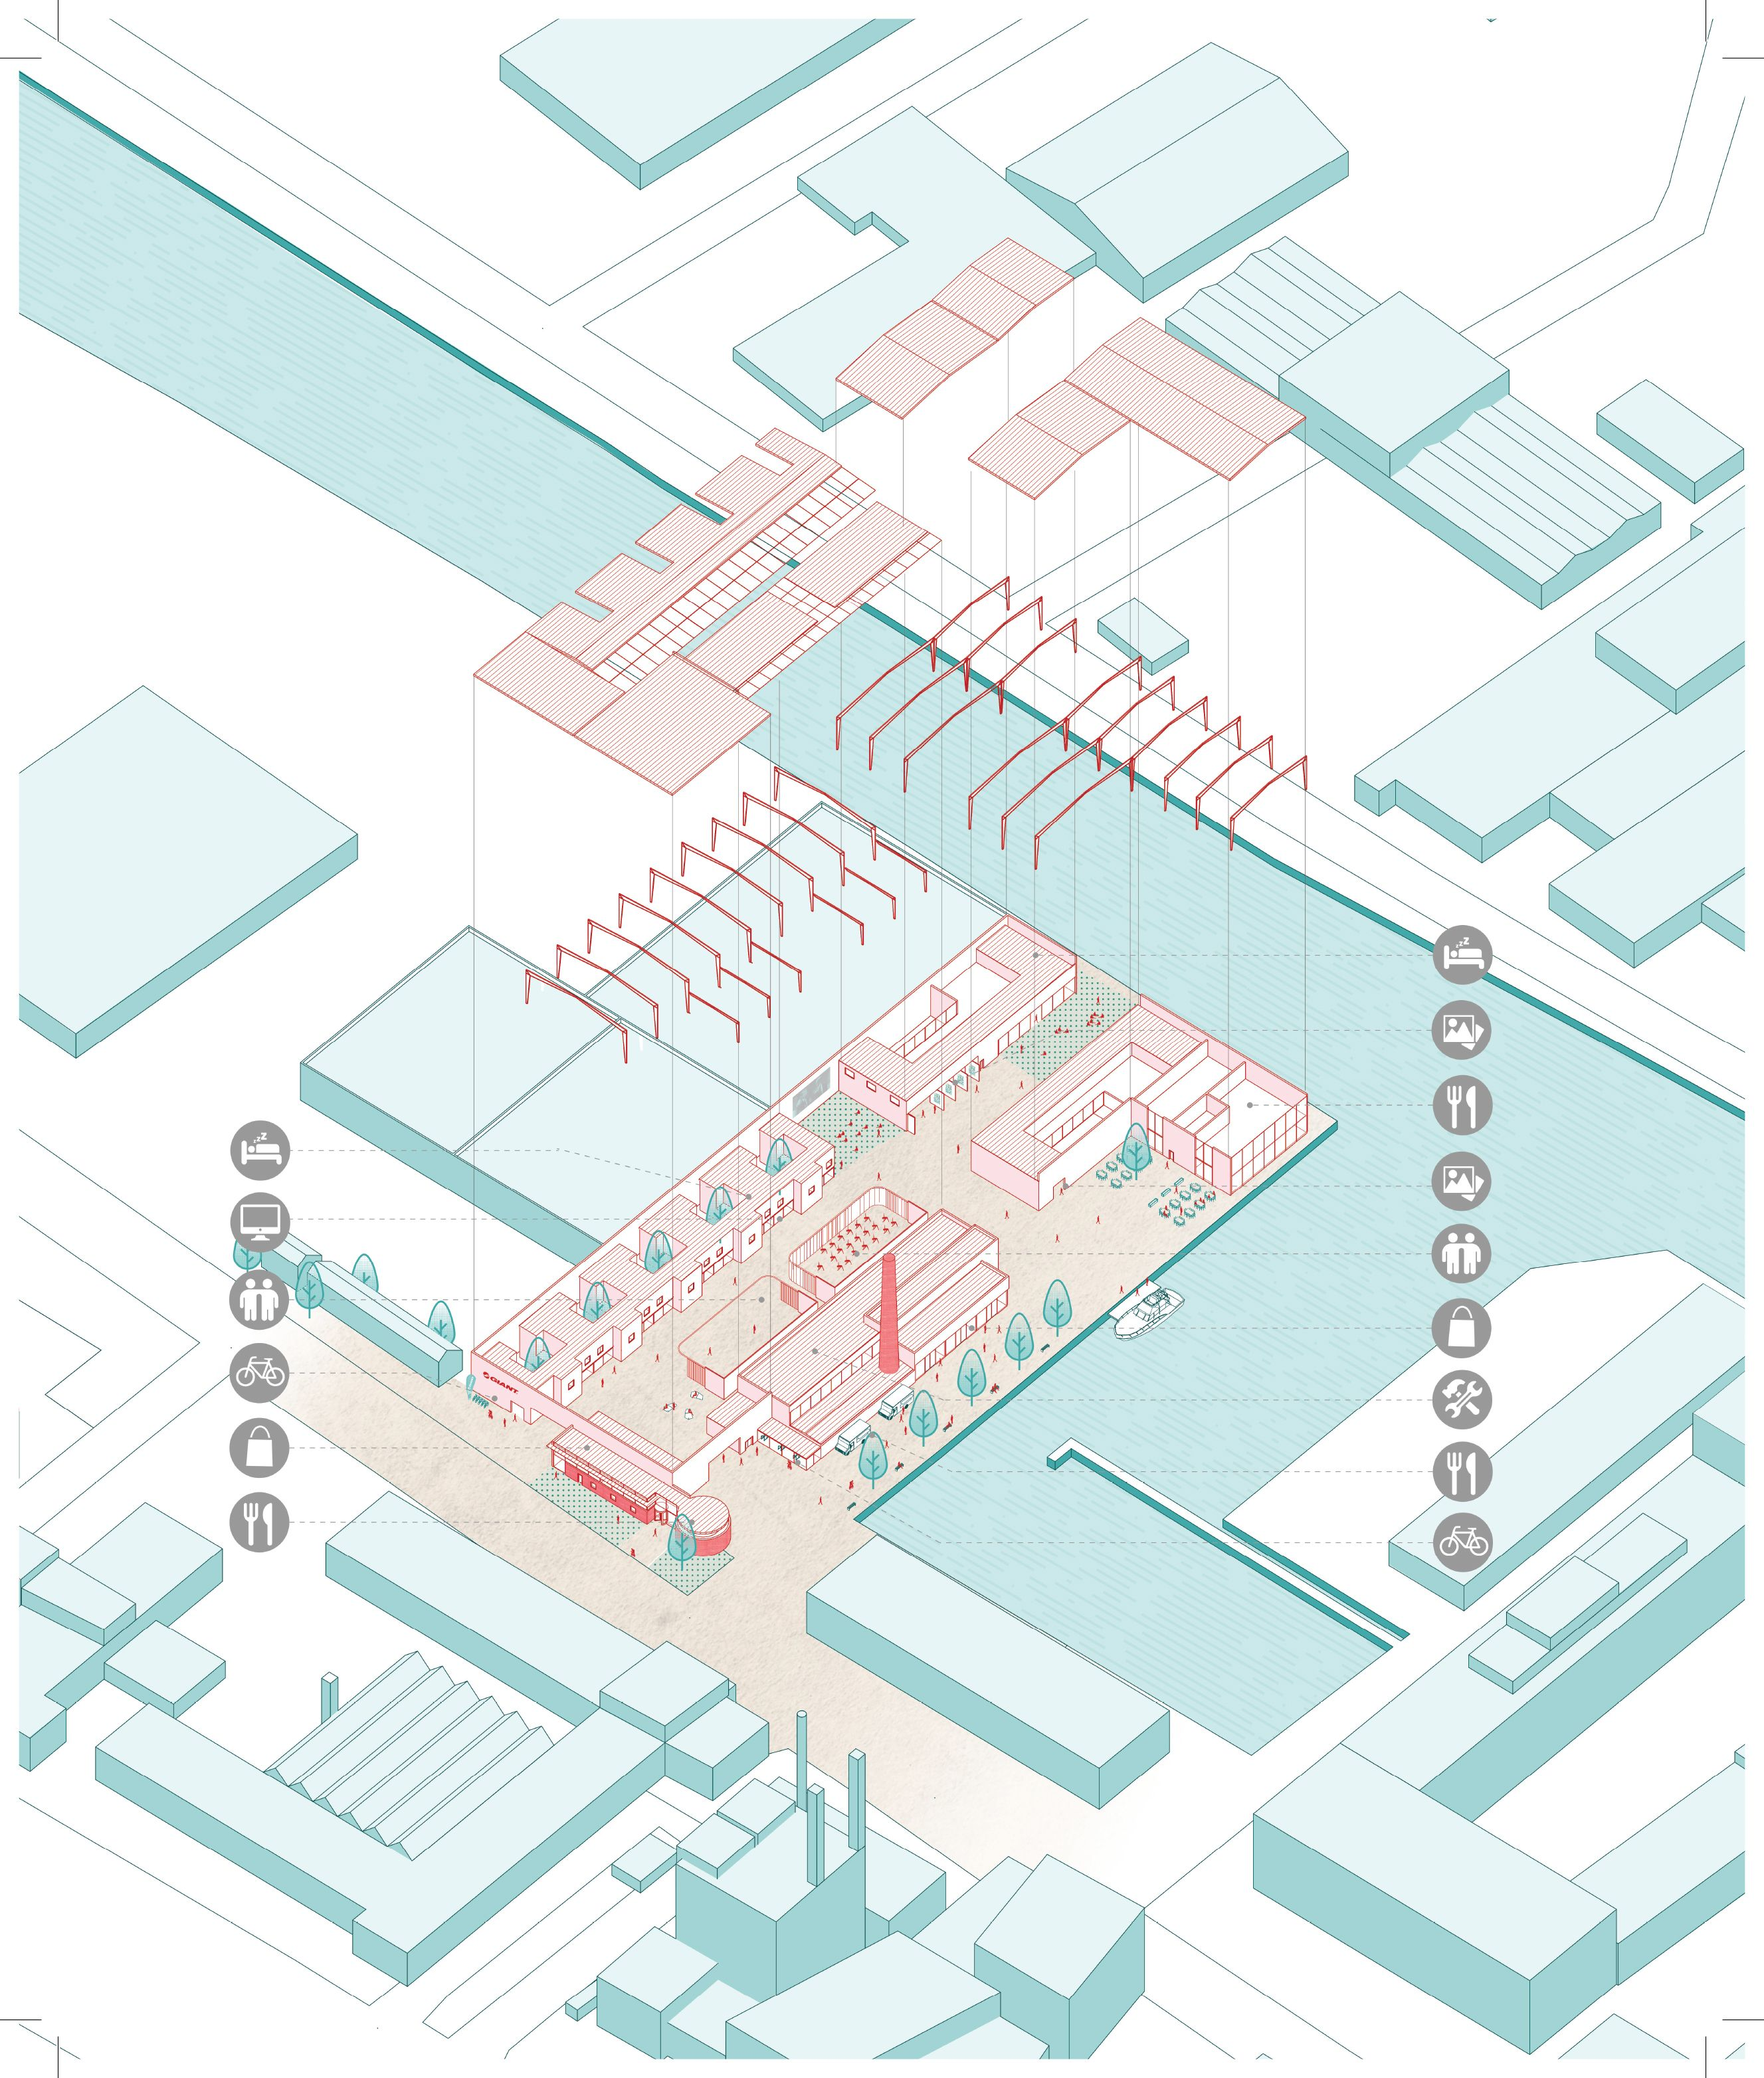 MSD M.Arch S2/16 - Stephanie Choy. Studio Thesis 04 - Opportunistic Urbanism. Tutors: Katherine Sundermann and Andy Fergus. Co-exist.